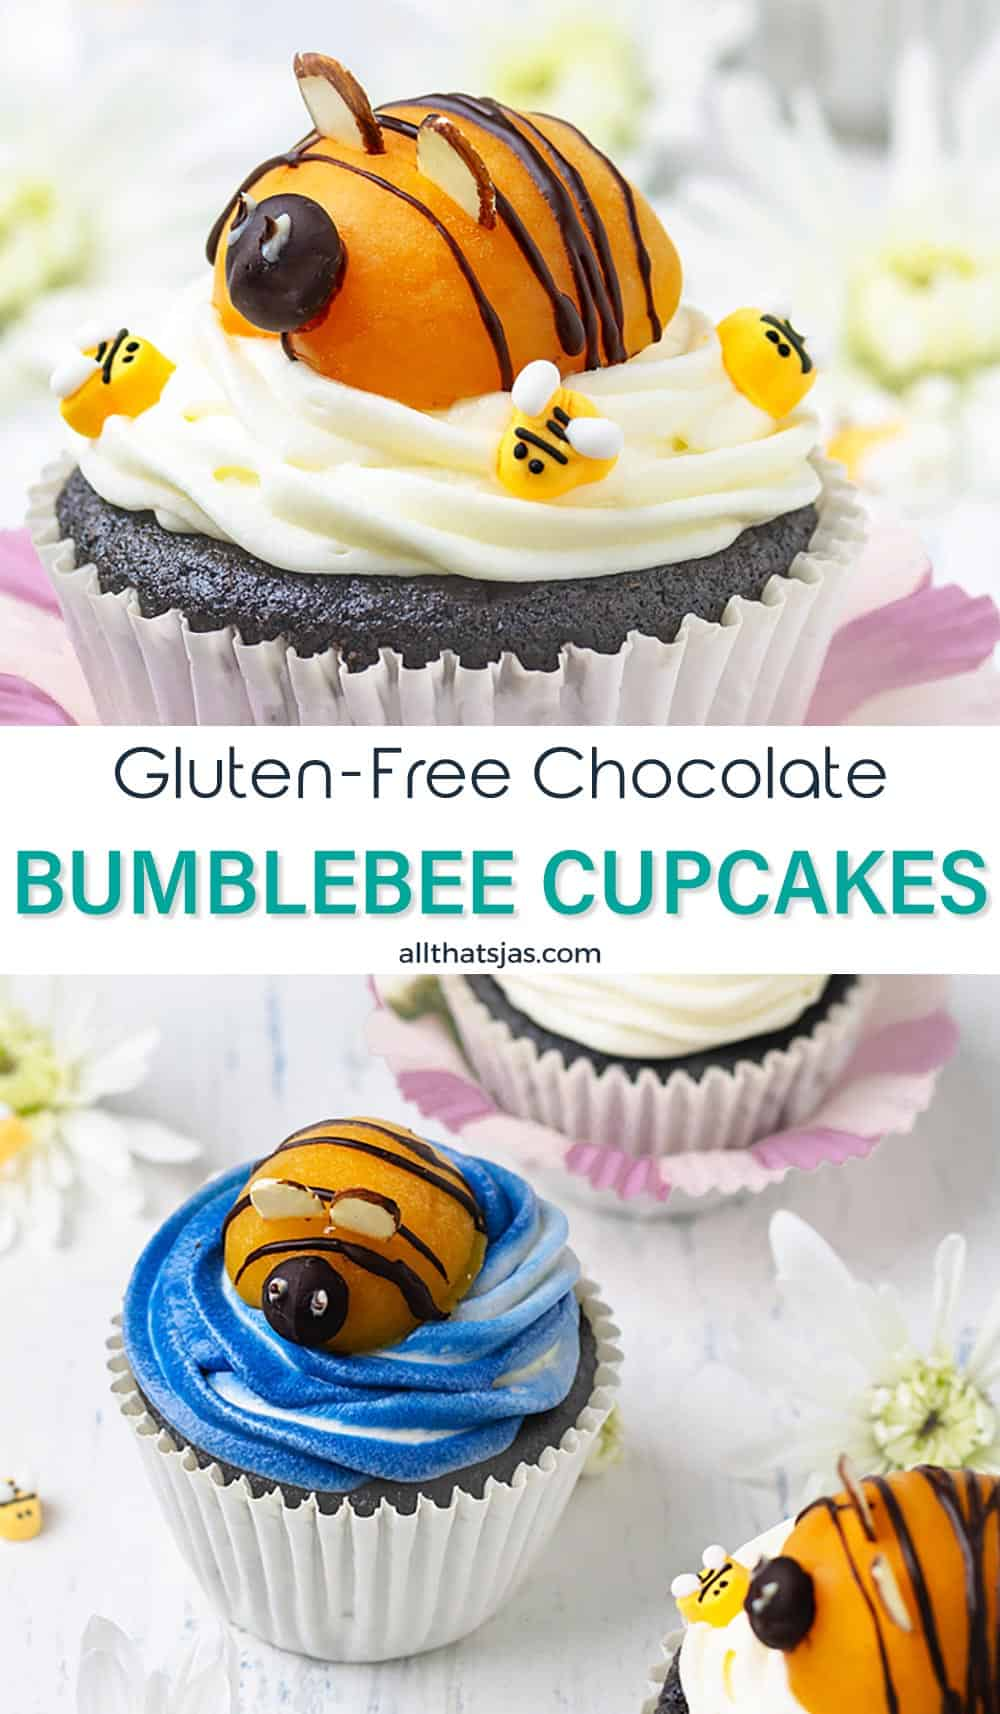 Two photo image of gluten-free chocolate cupcakes with text overlay in the middle.